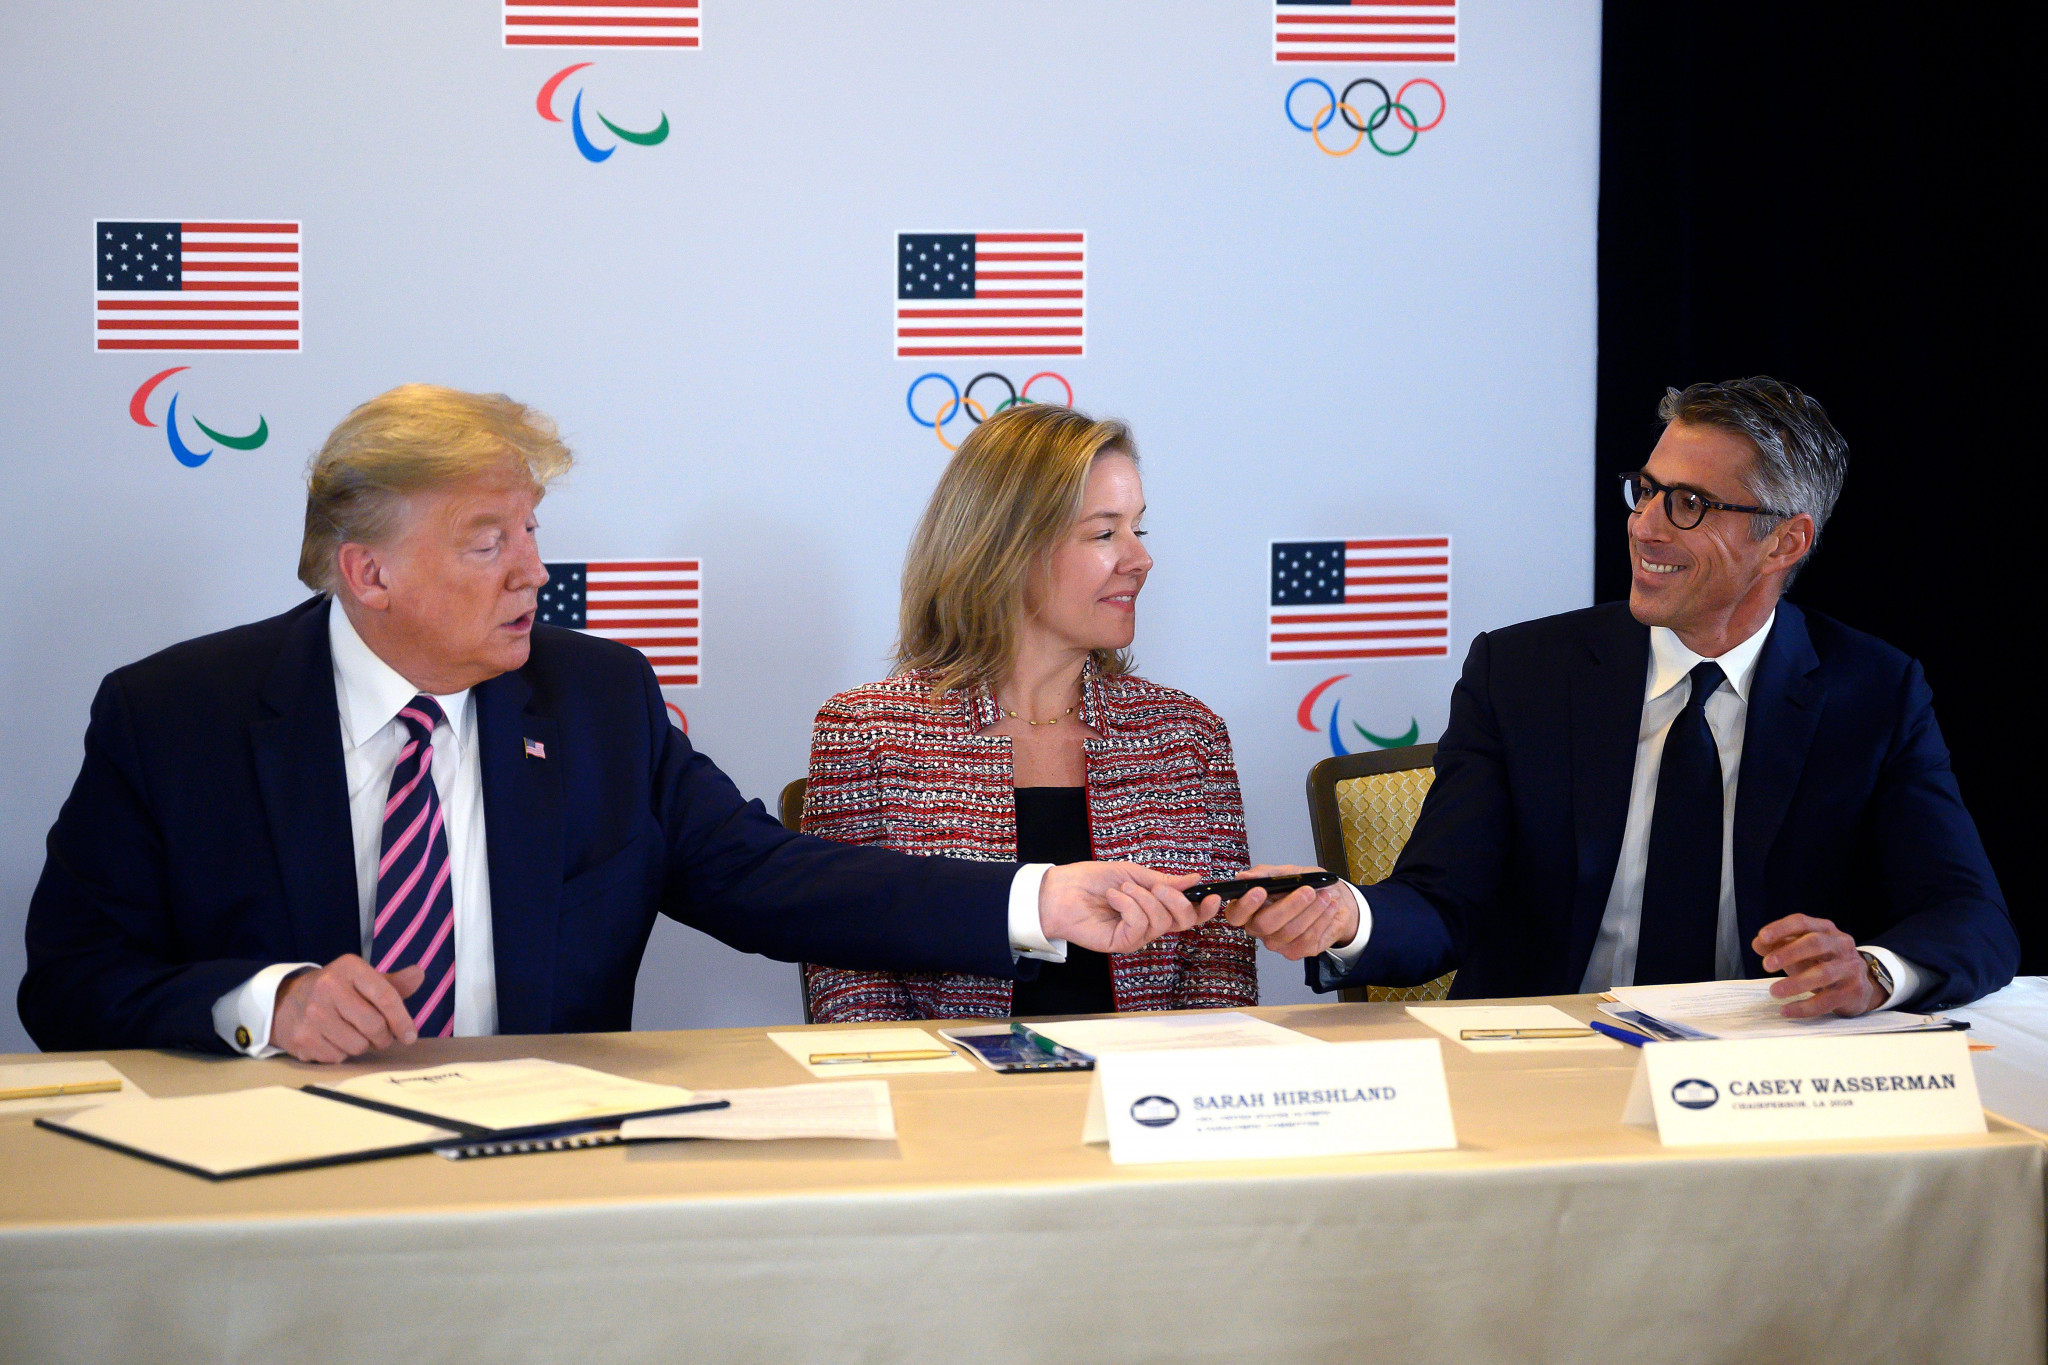 Los Angeles 2028 Chairman Casey Wasserman (right) with US President Donald Trump (left) and US Olympic and Paralympic Committee Executive Sarah Hirshland © Getty Images